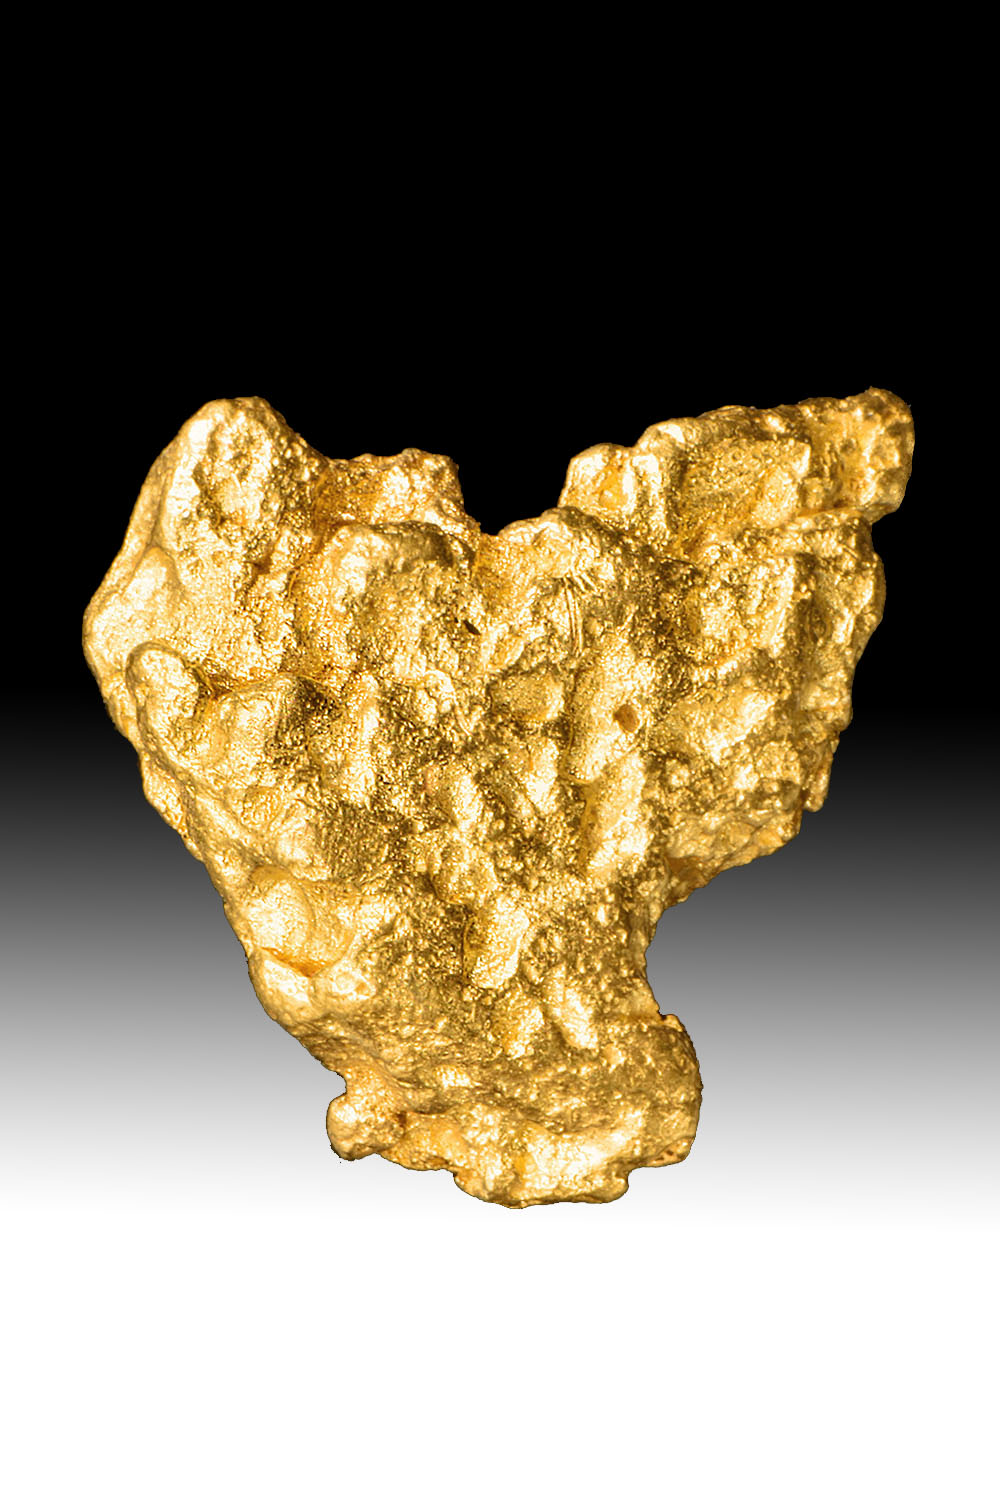 "Offset ""Triangle"" Shaped Textured Australian Gold Nugget"